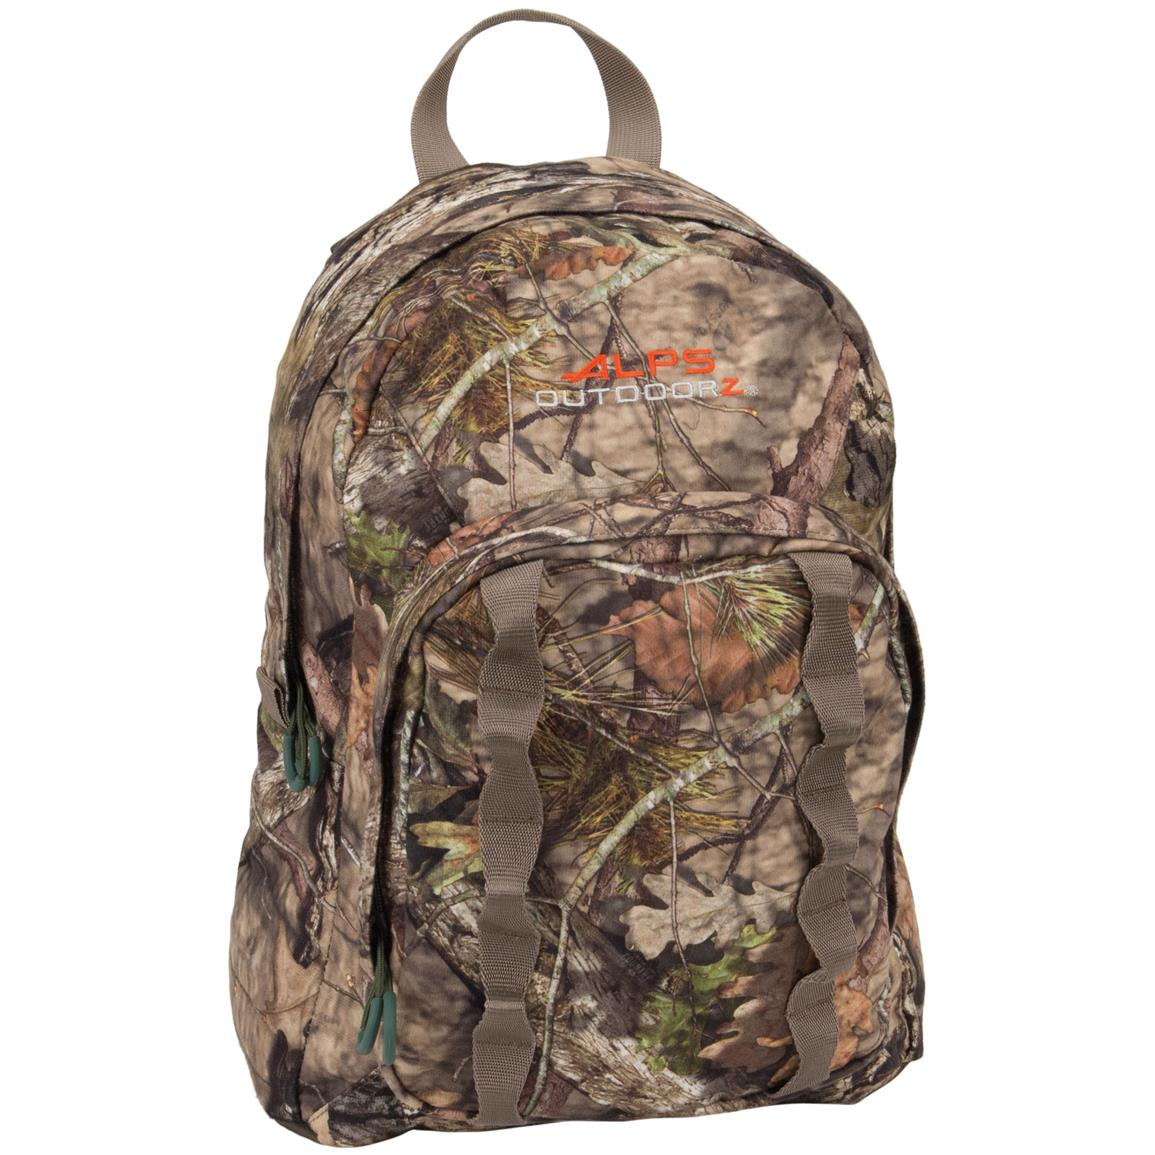 ALPS OutdoorZ Ranger Backpack, Mossy Oak Break-Up Country